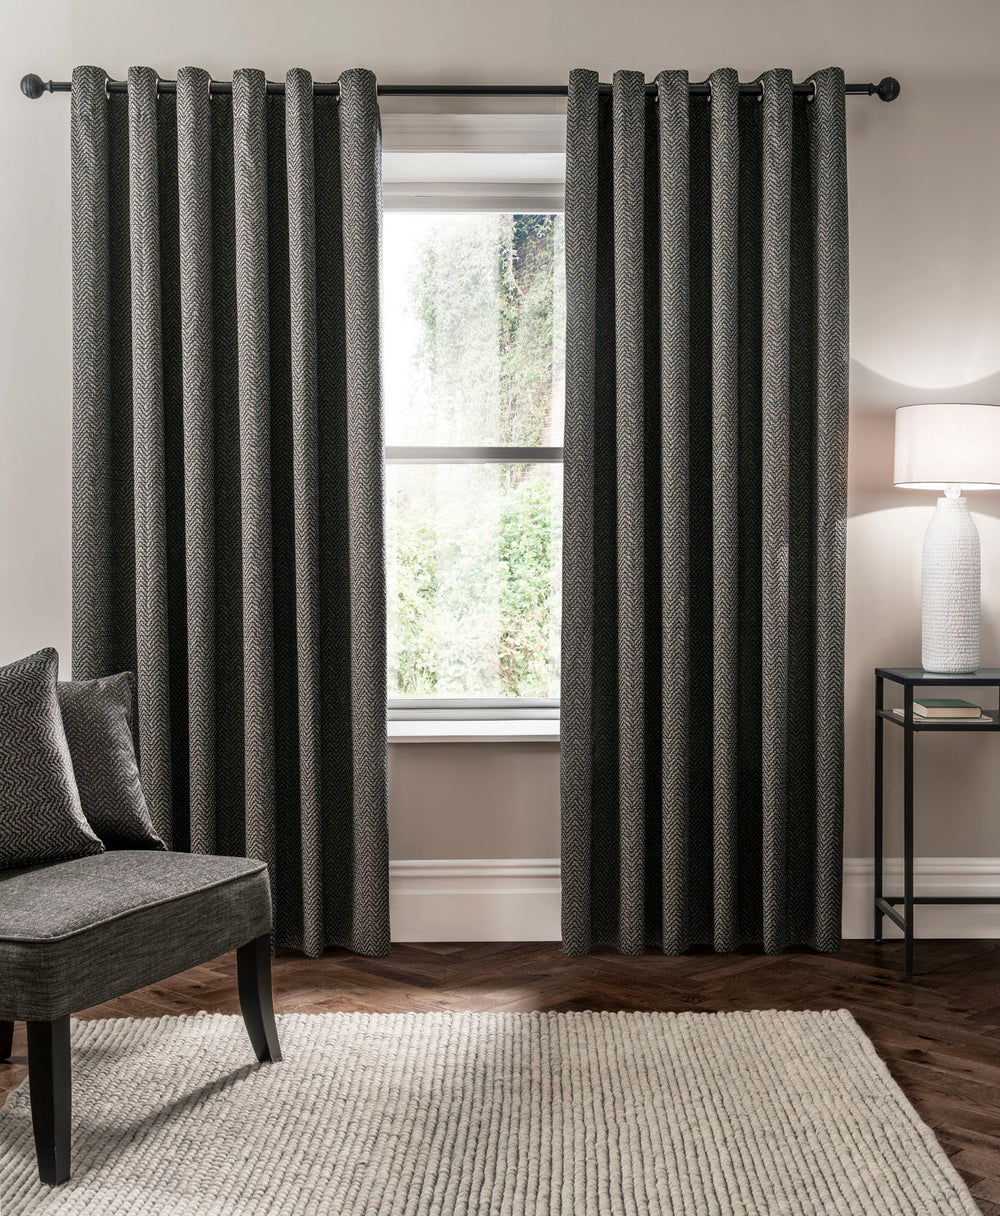 Clarke & Clarke 'Verona' Designer Lined Eyelet Curtains | Charcoal Zig Zag - Your 4 Walls